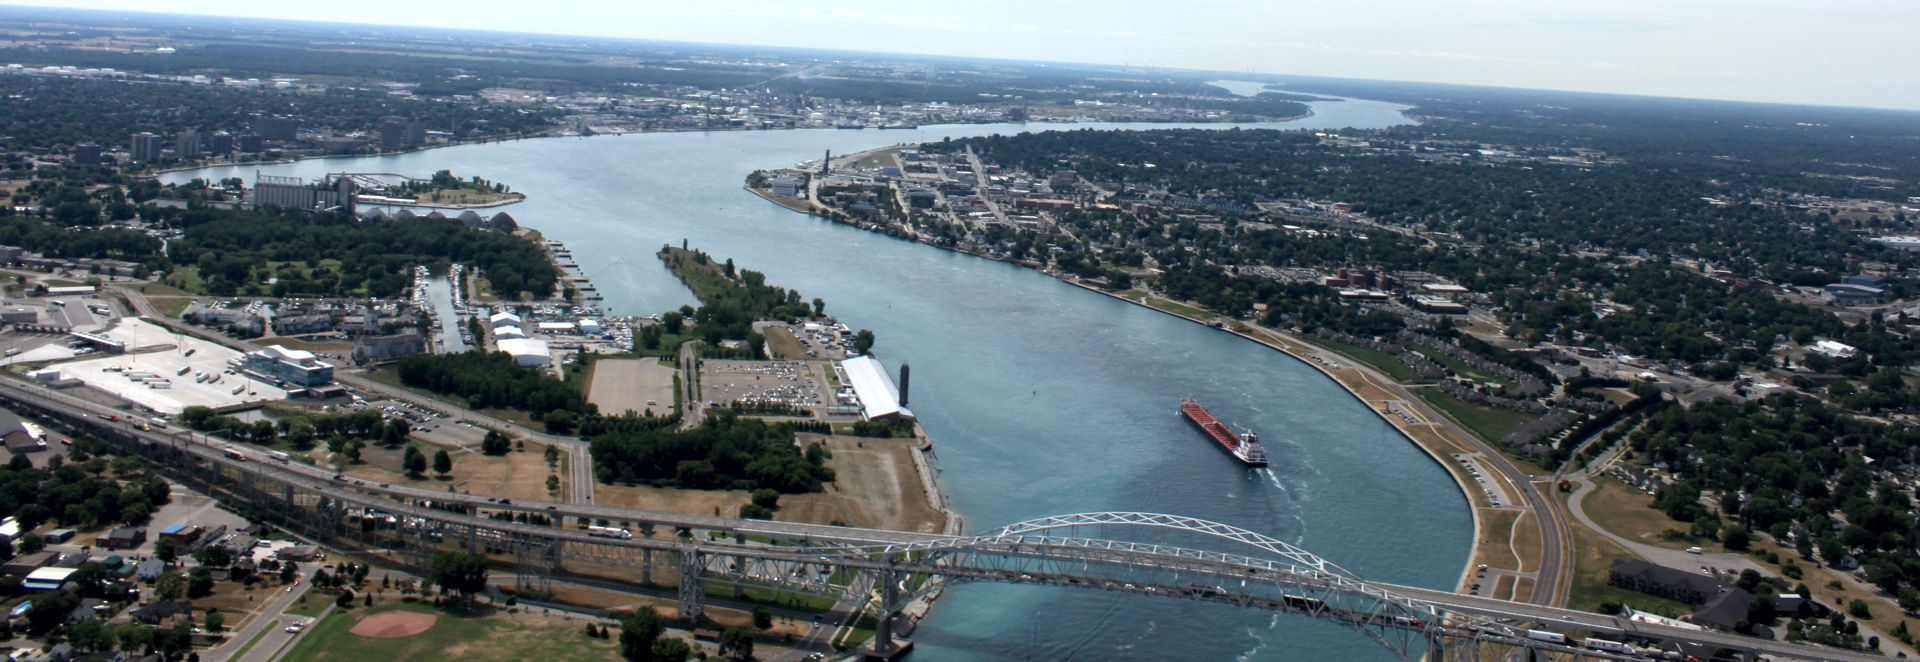 st clair river with freighter